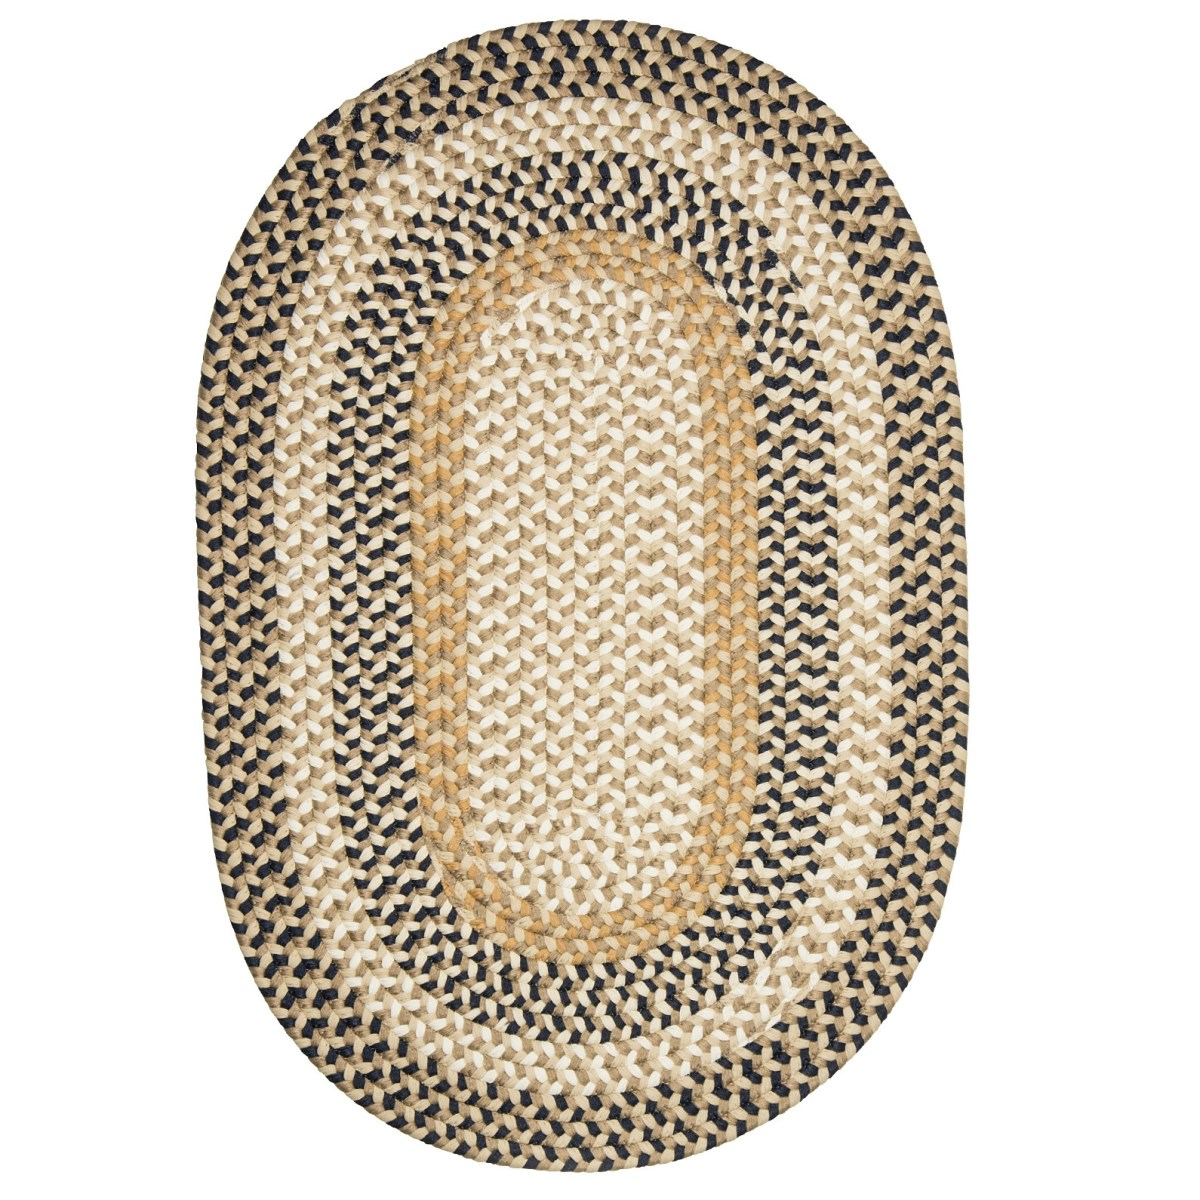 Burmingham Blue Crest Outdoor Braided Oval Rugs